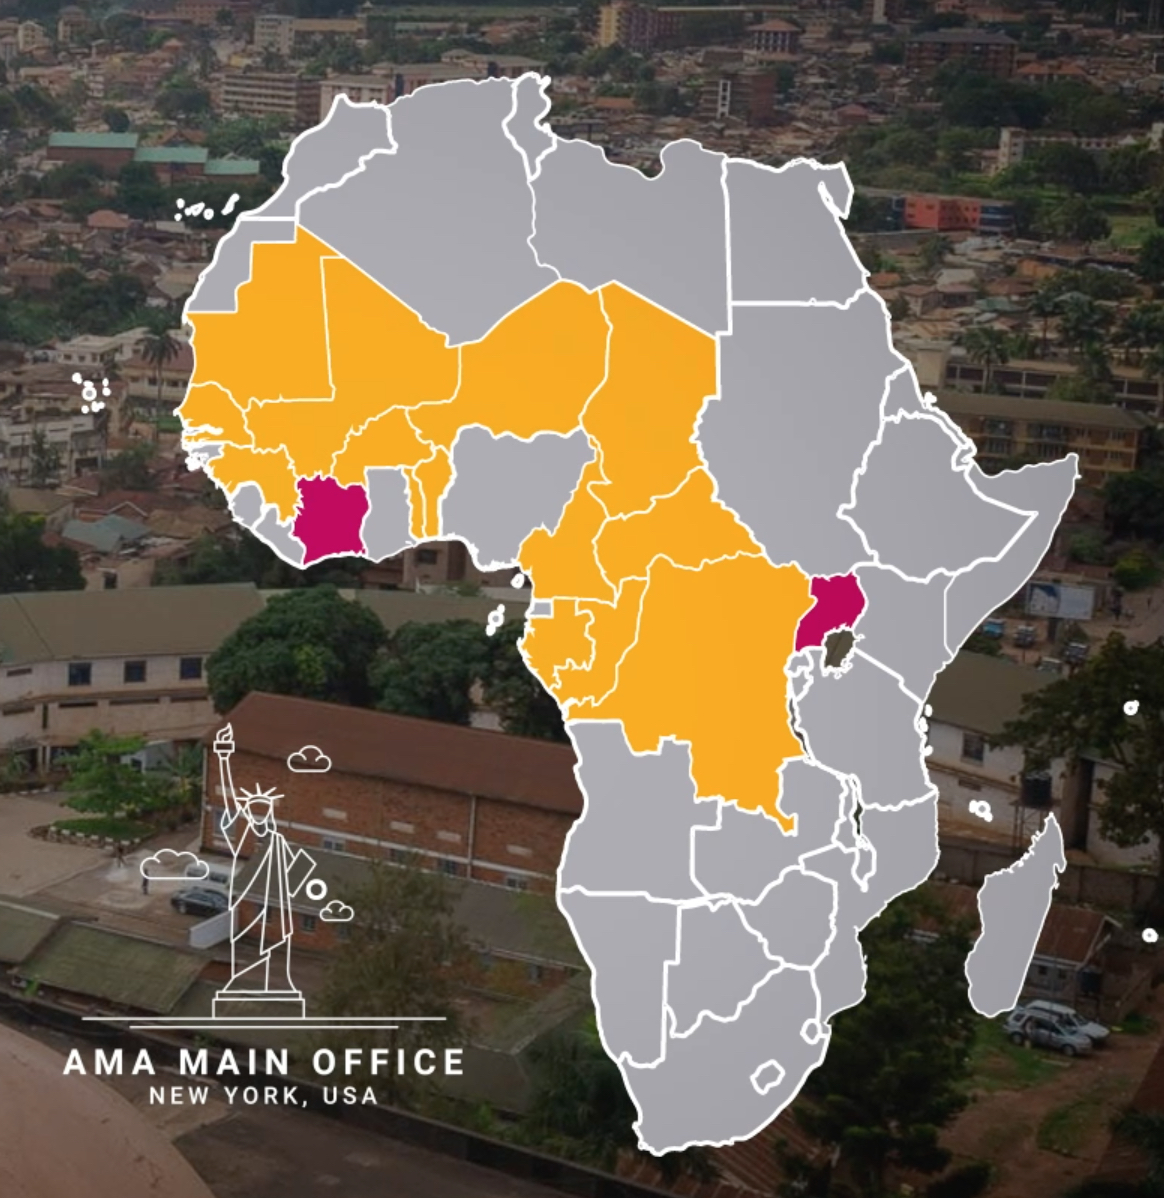 African Media Agency Further Expands across Africa